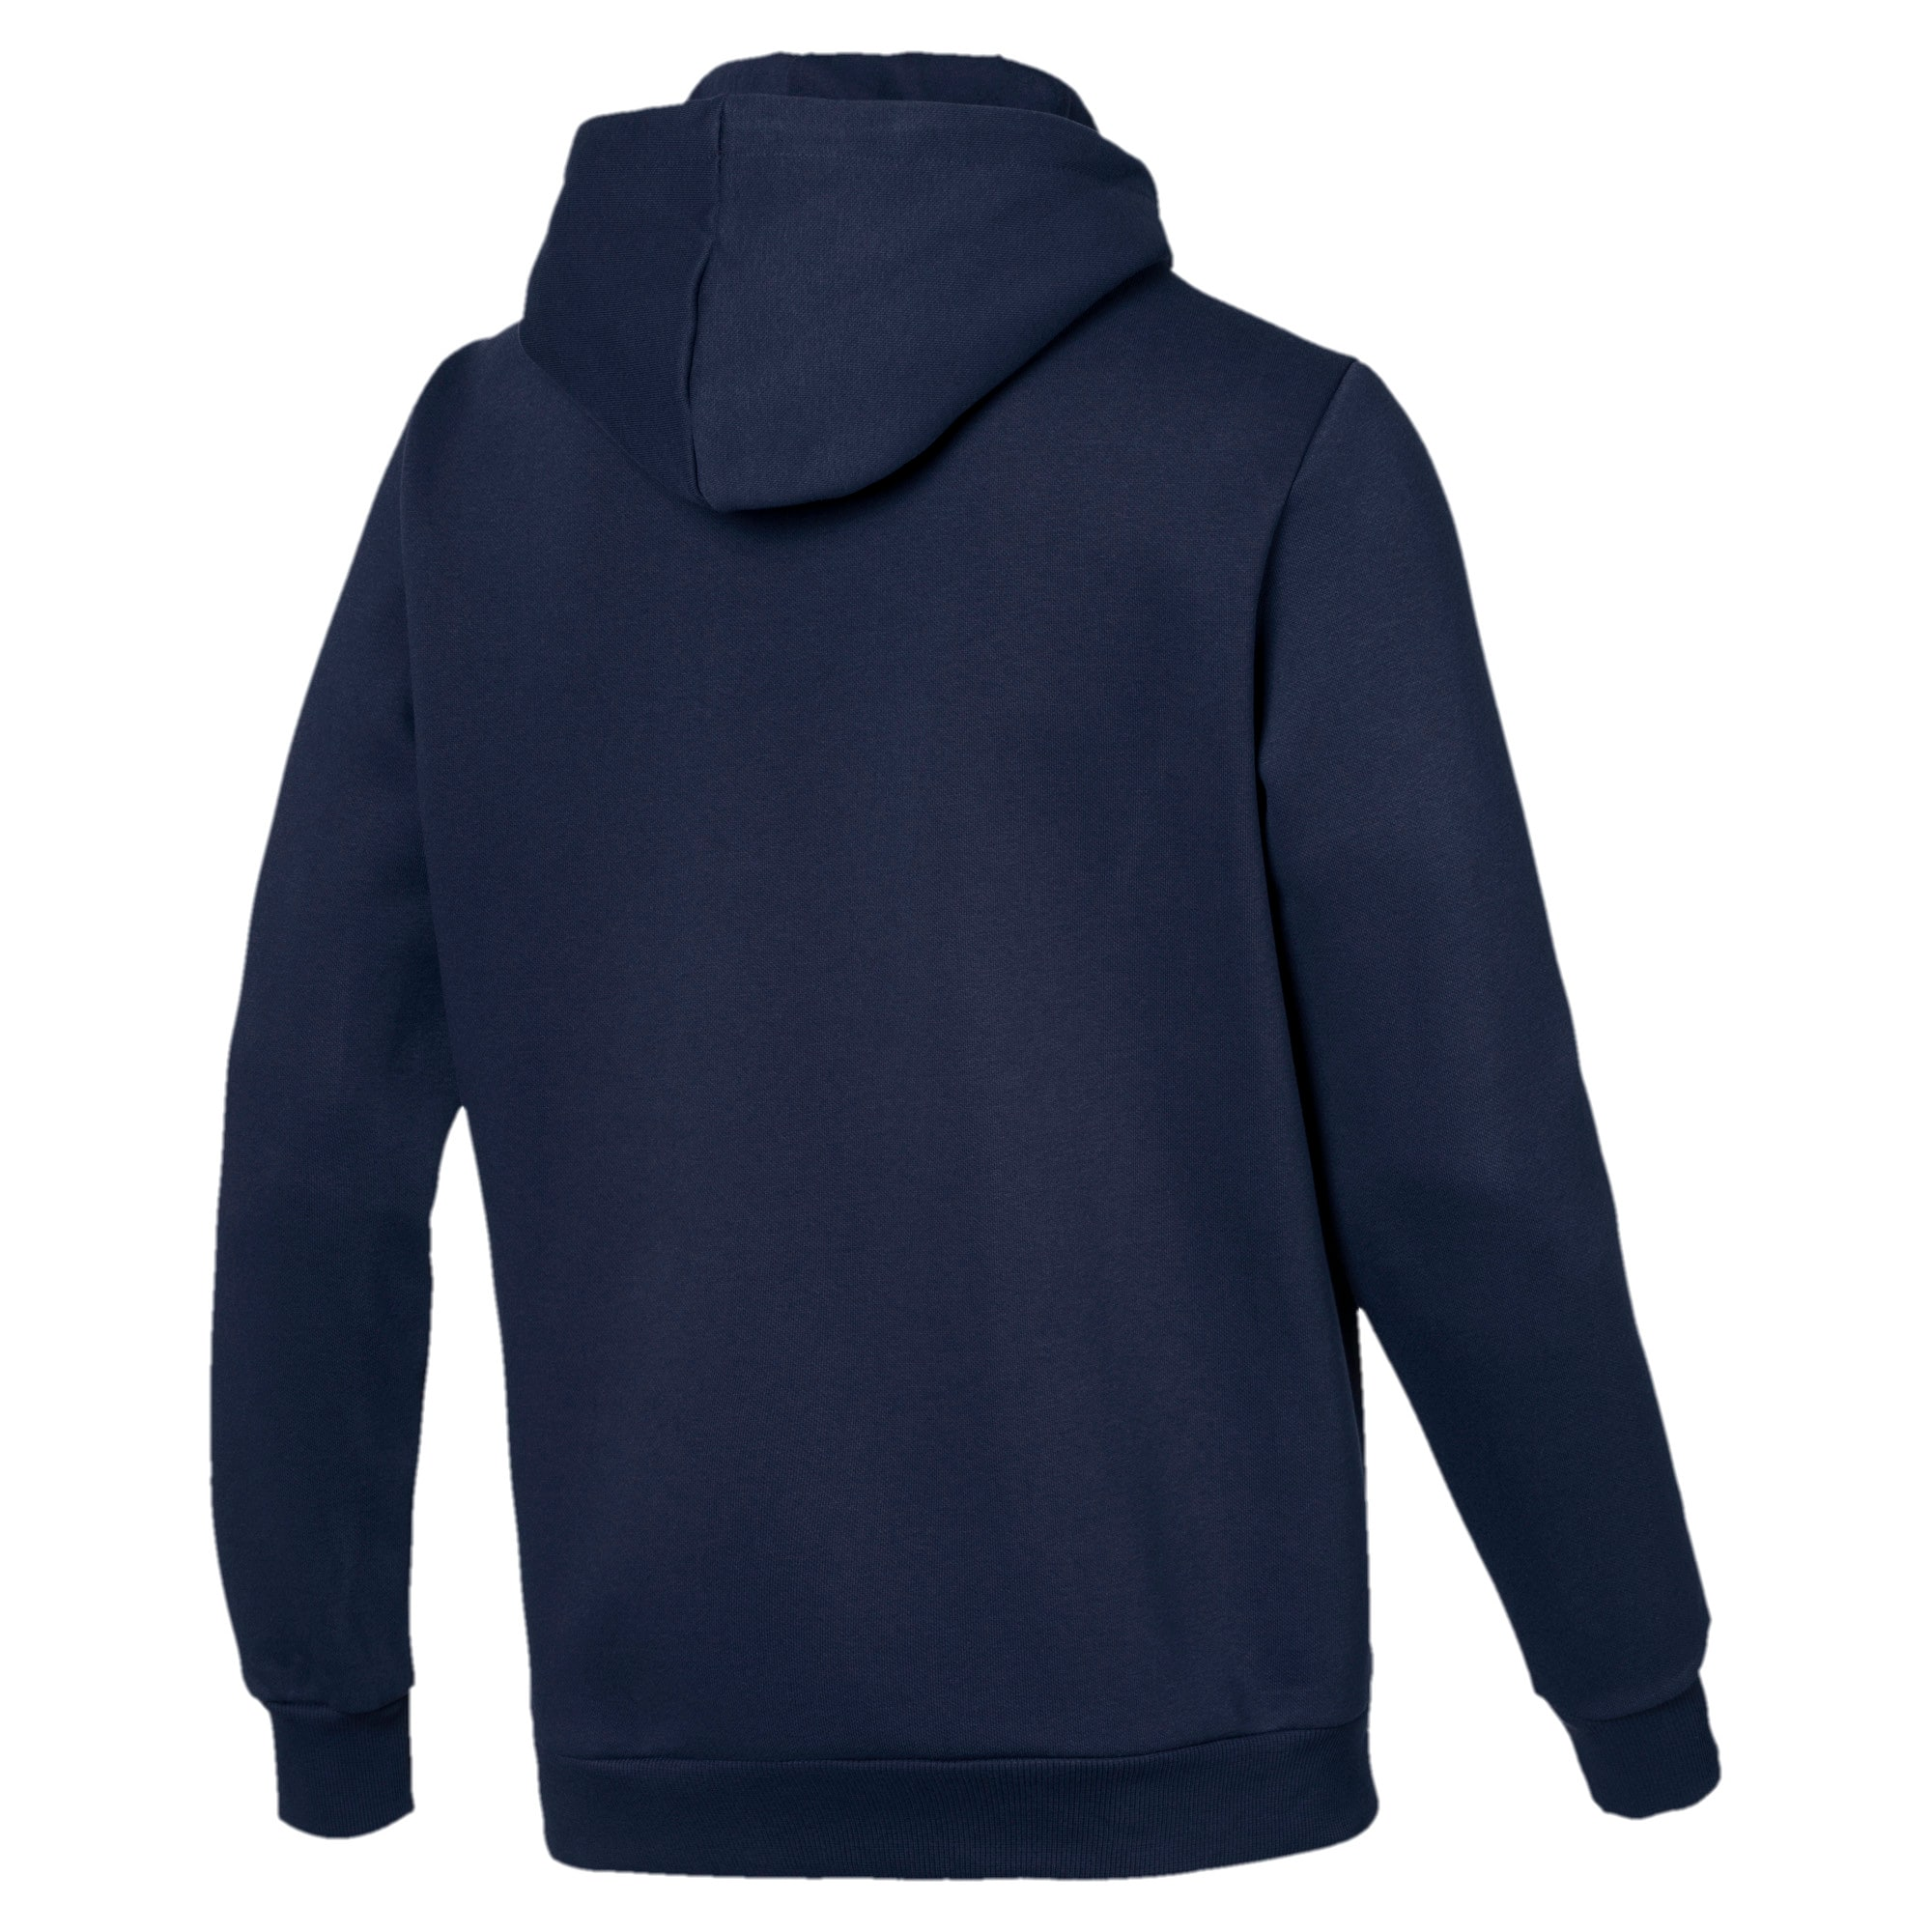 Thumbnail 3 of Essentials Men's Fleece Hoodie, Peacoat, medium